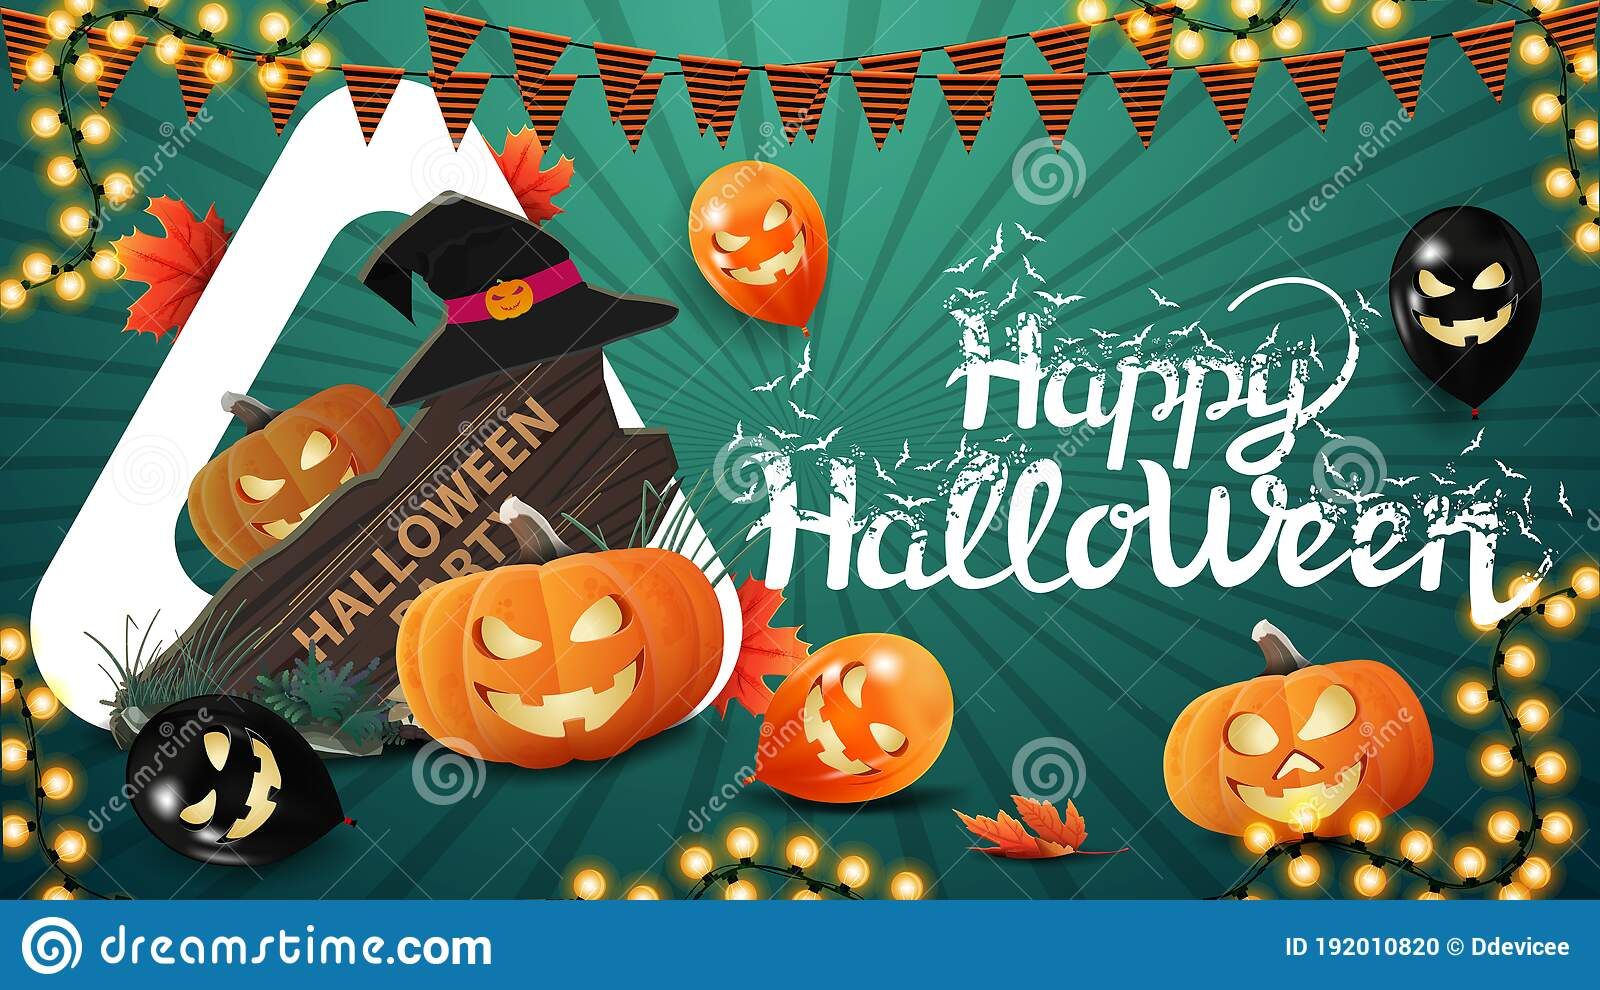 Happy Halloween Horizontal Green Greeting Postcard With Halloween Balloons Pumpkin Garland Wooden Sign Witch Hat And Pumpkin Stock Vector Illustration Of Sign Vector 192010820